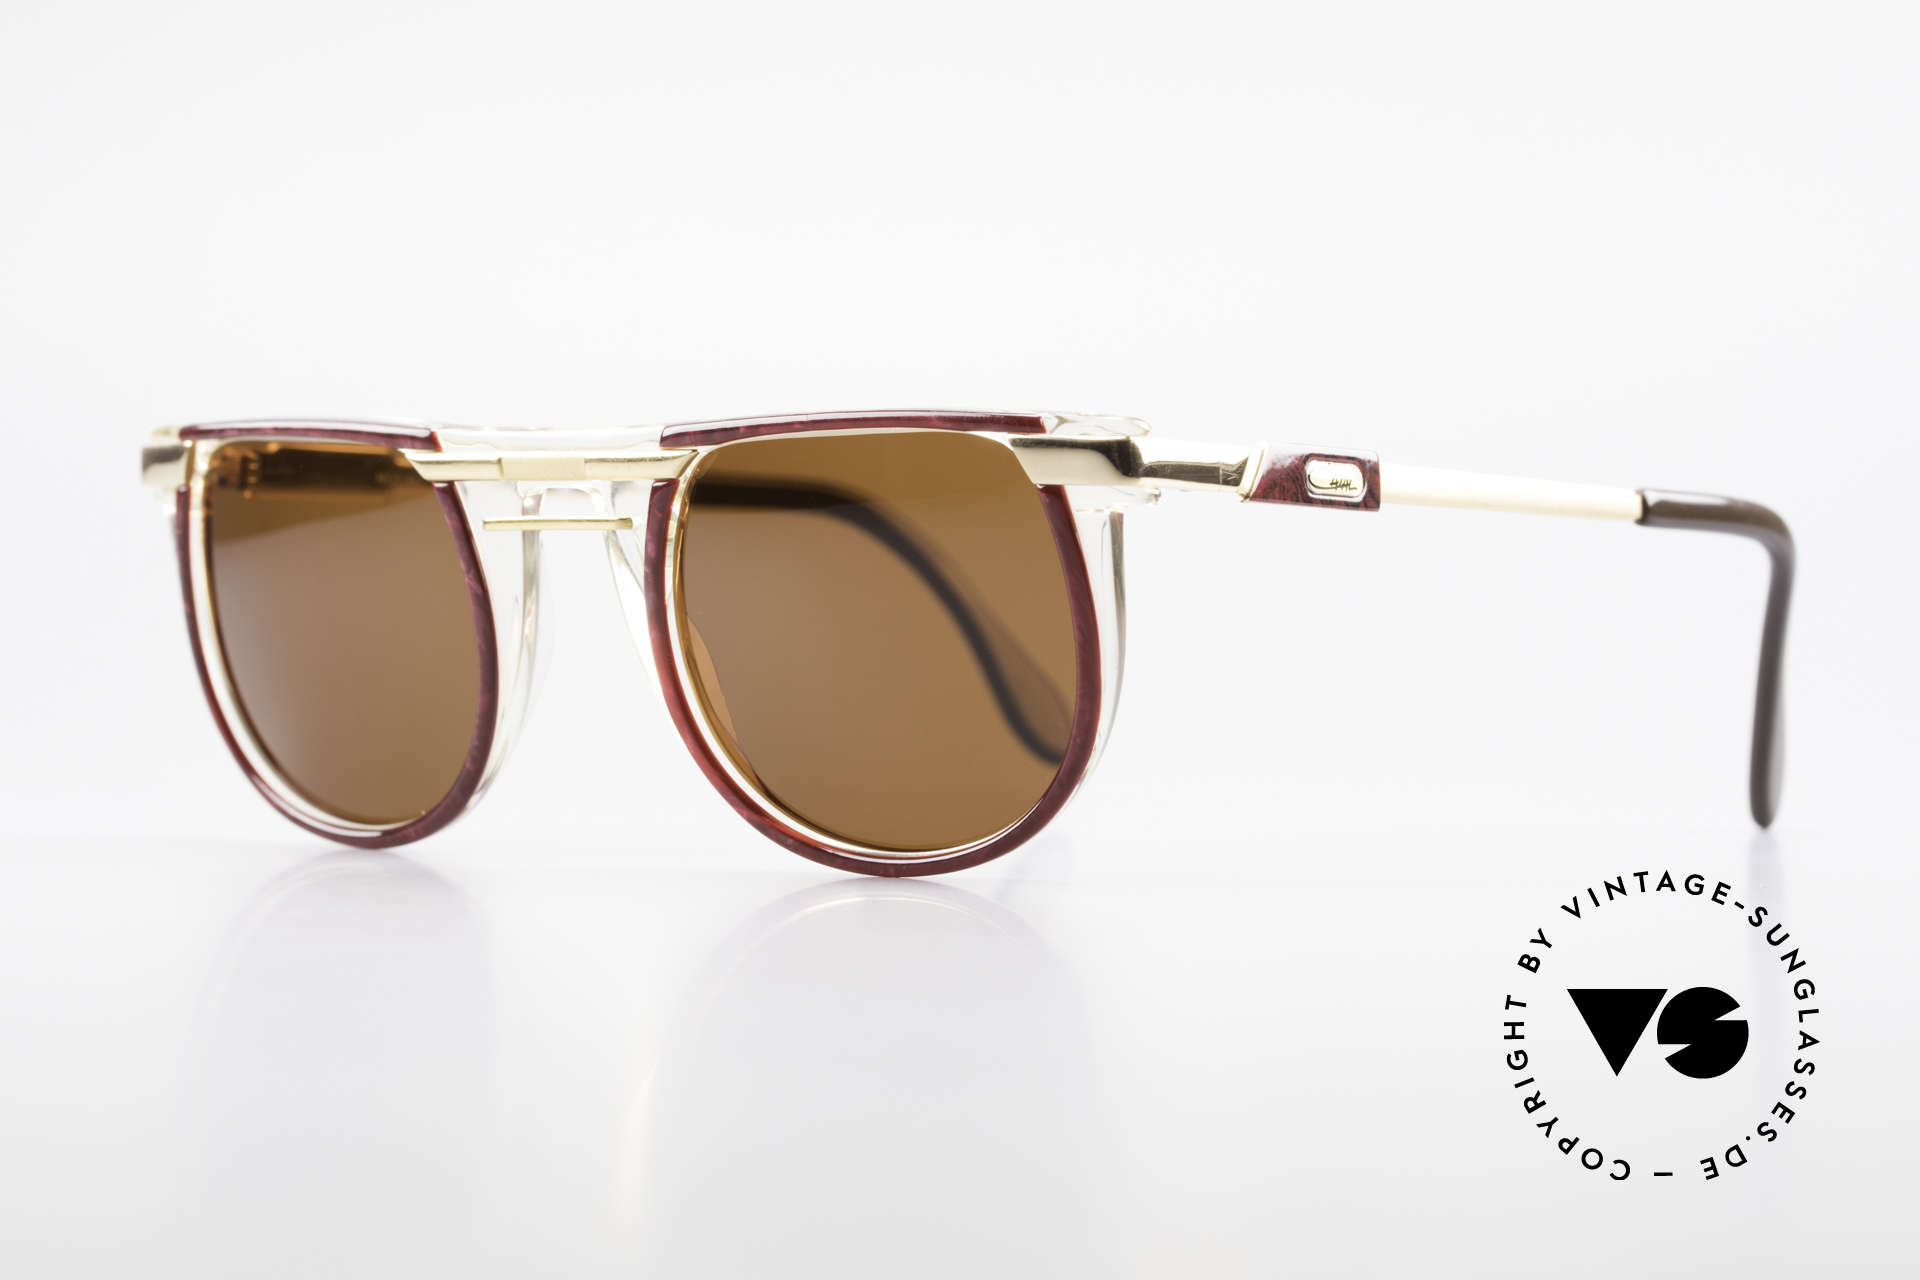 Cazal 647 90's Vintage Designer Shades, great combination of colors, shapes & materials, Made for Men and Women